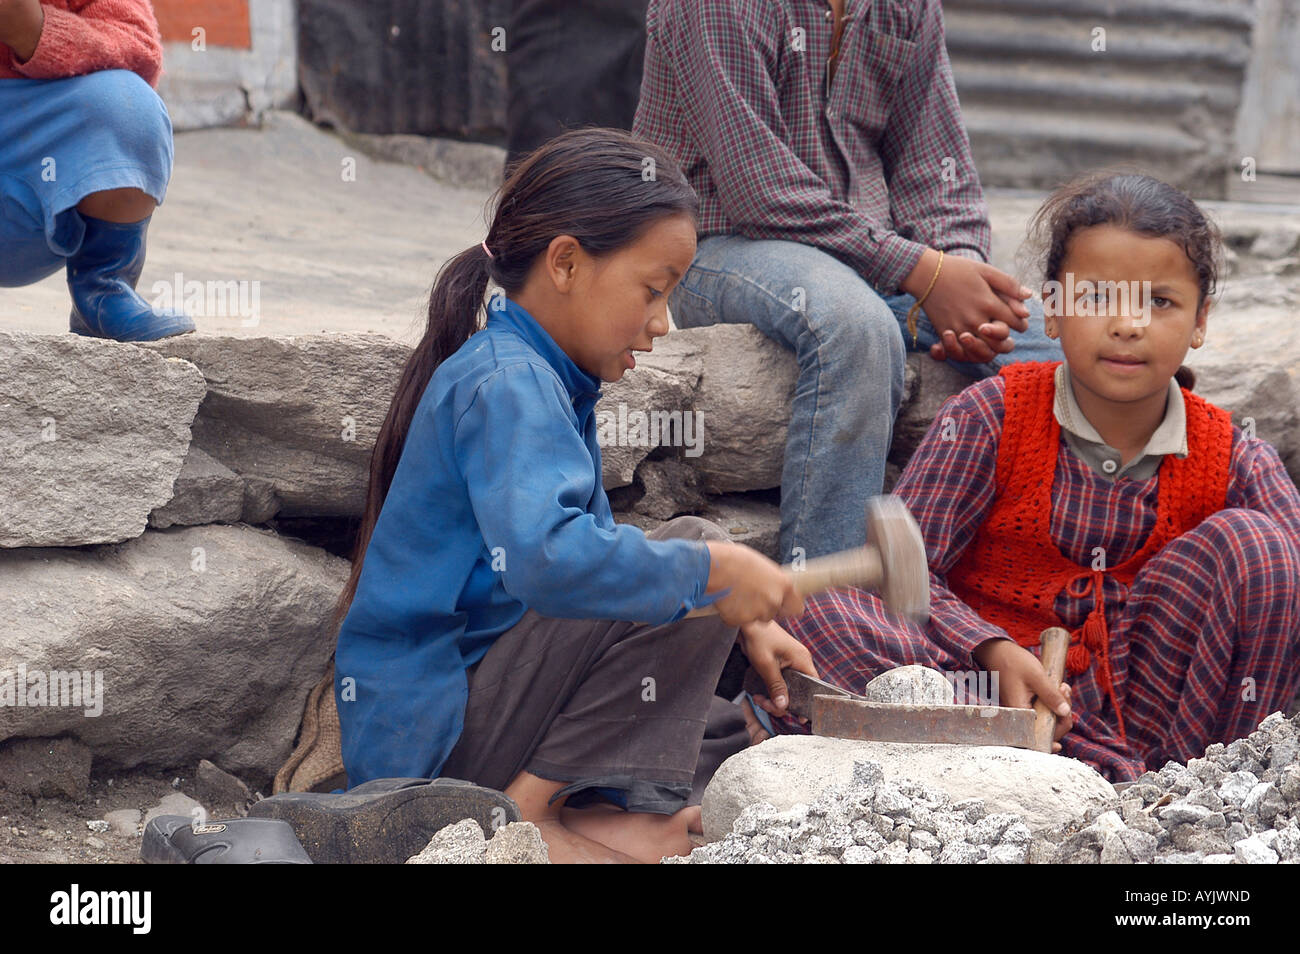 young children of about 8 years old at work at a stone quarry breaking rocks into gravel - Stock Image